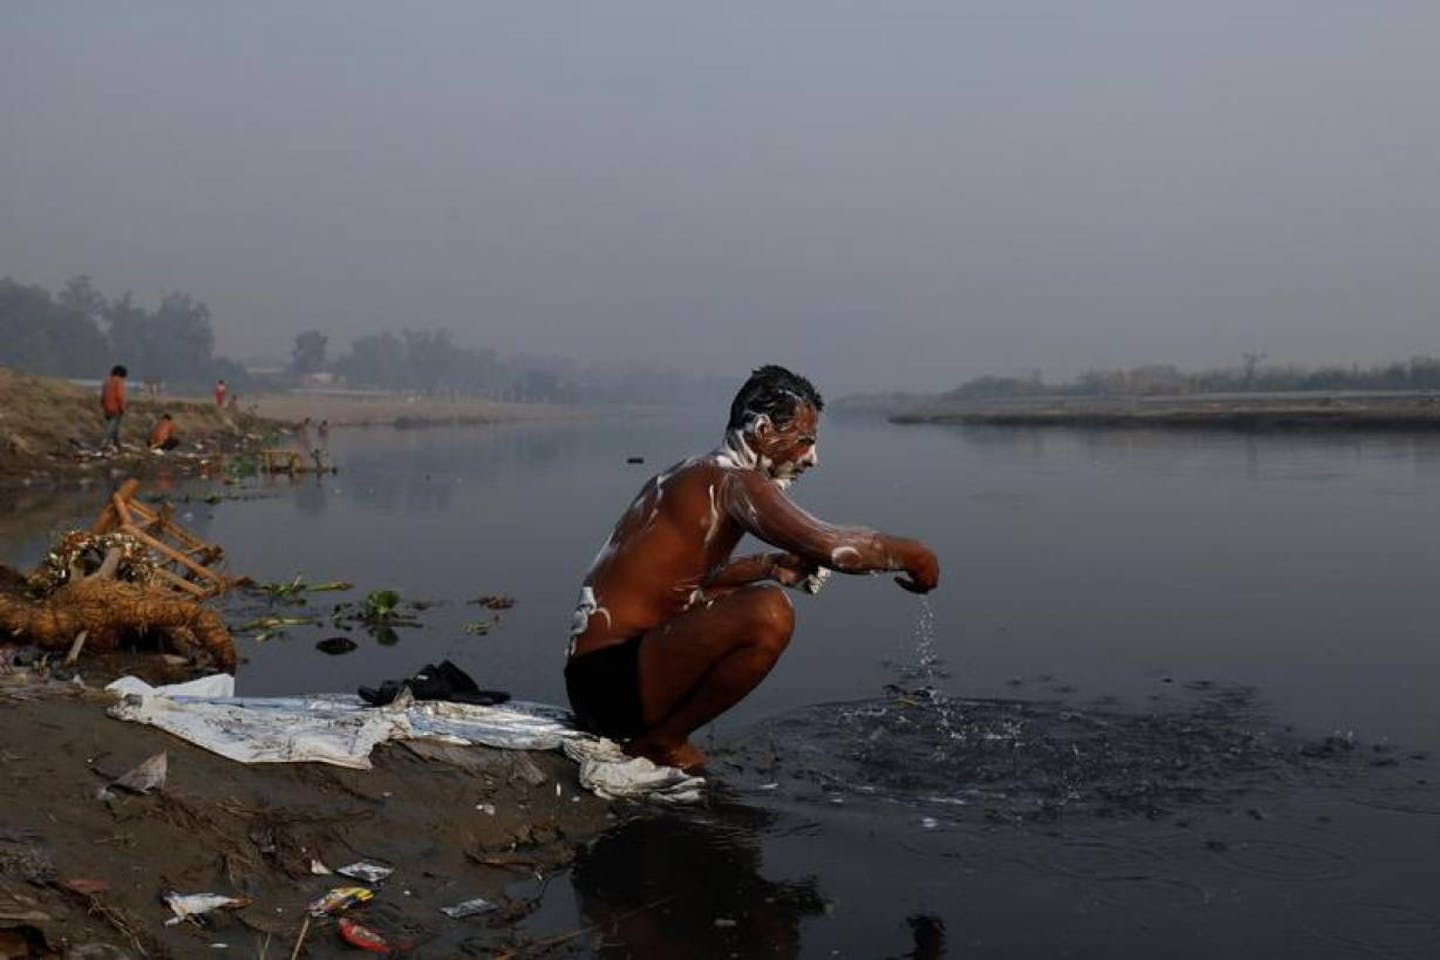 man washes in polluted water